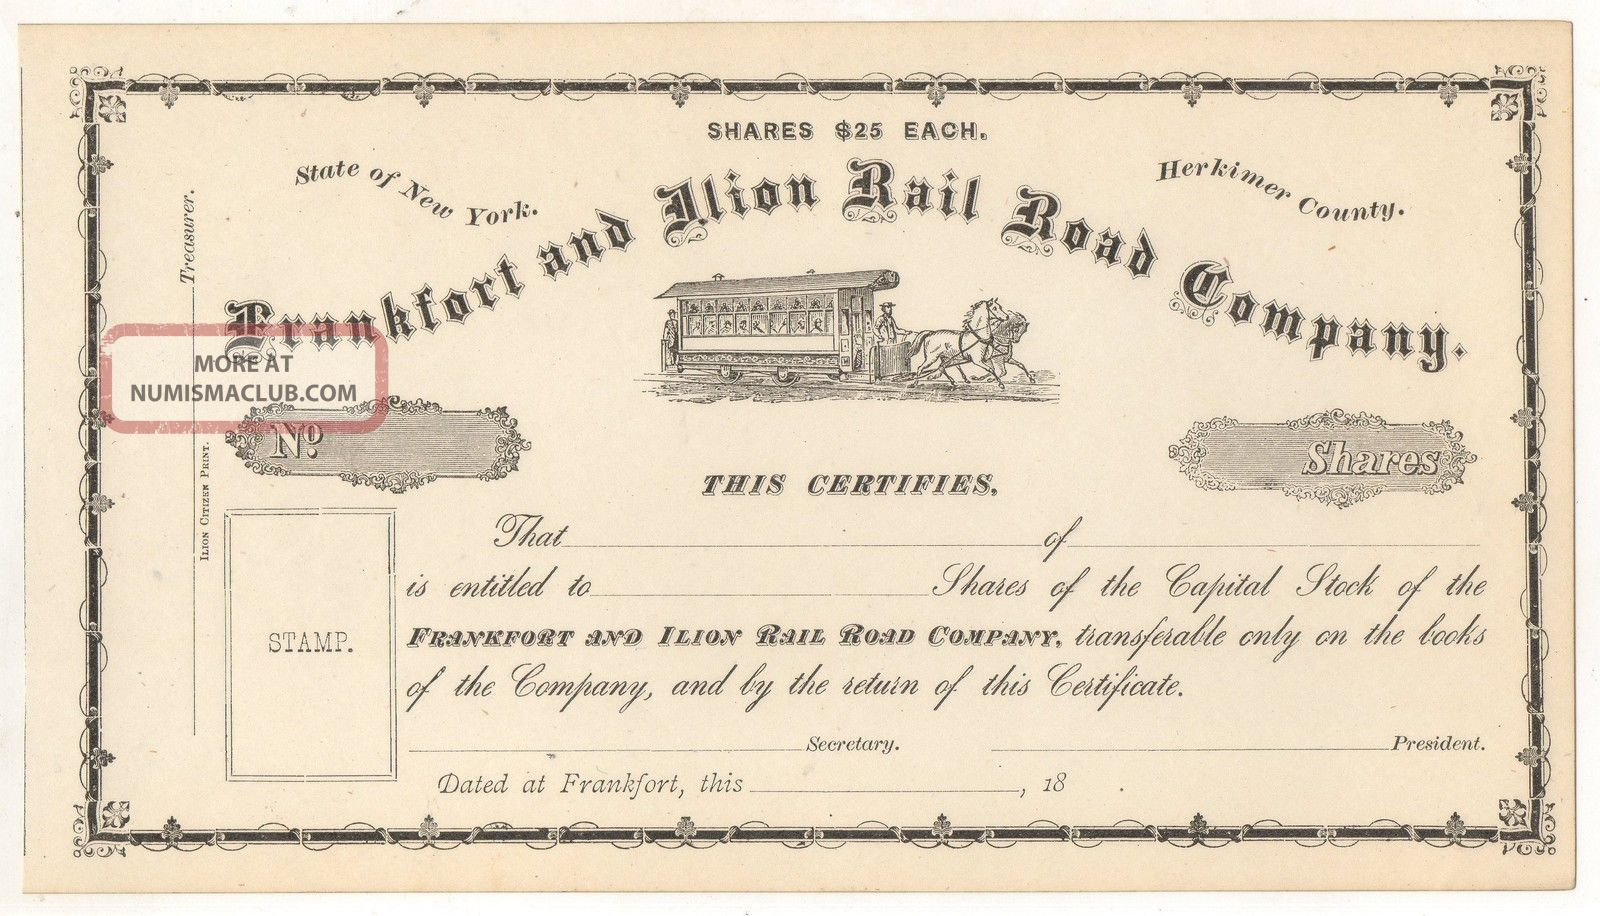 Frankfort And Ilion Railroad Company Horse Trolley Ny York Stock Certificate Transportation photo